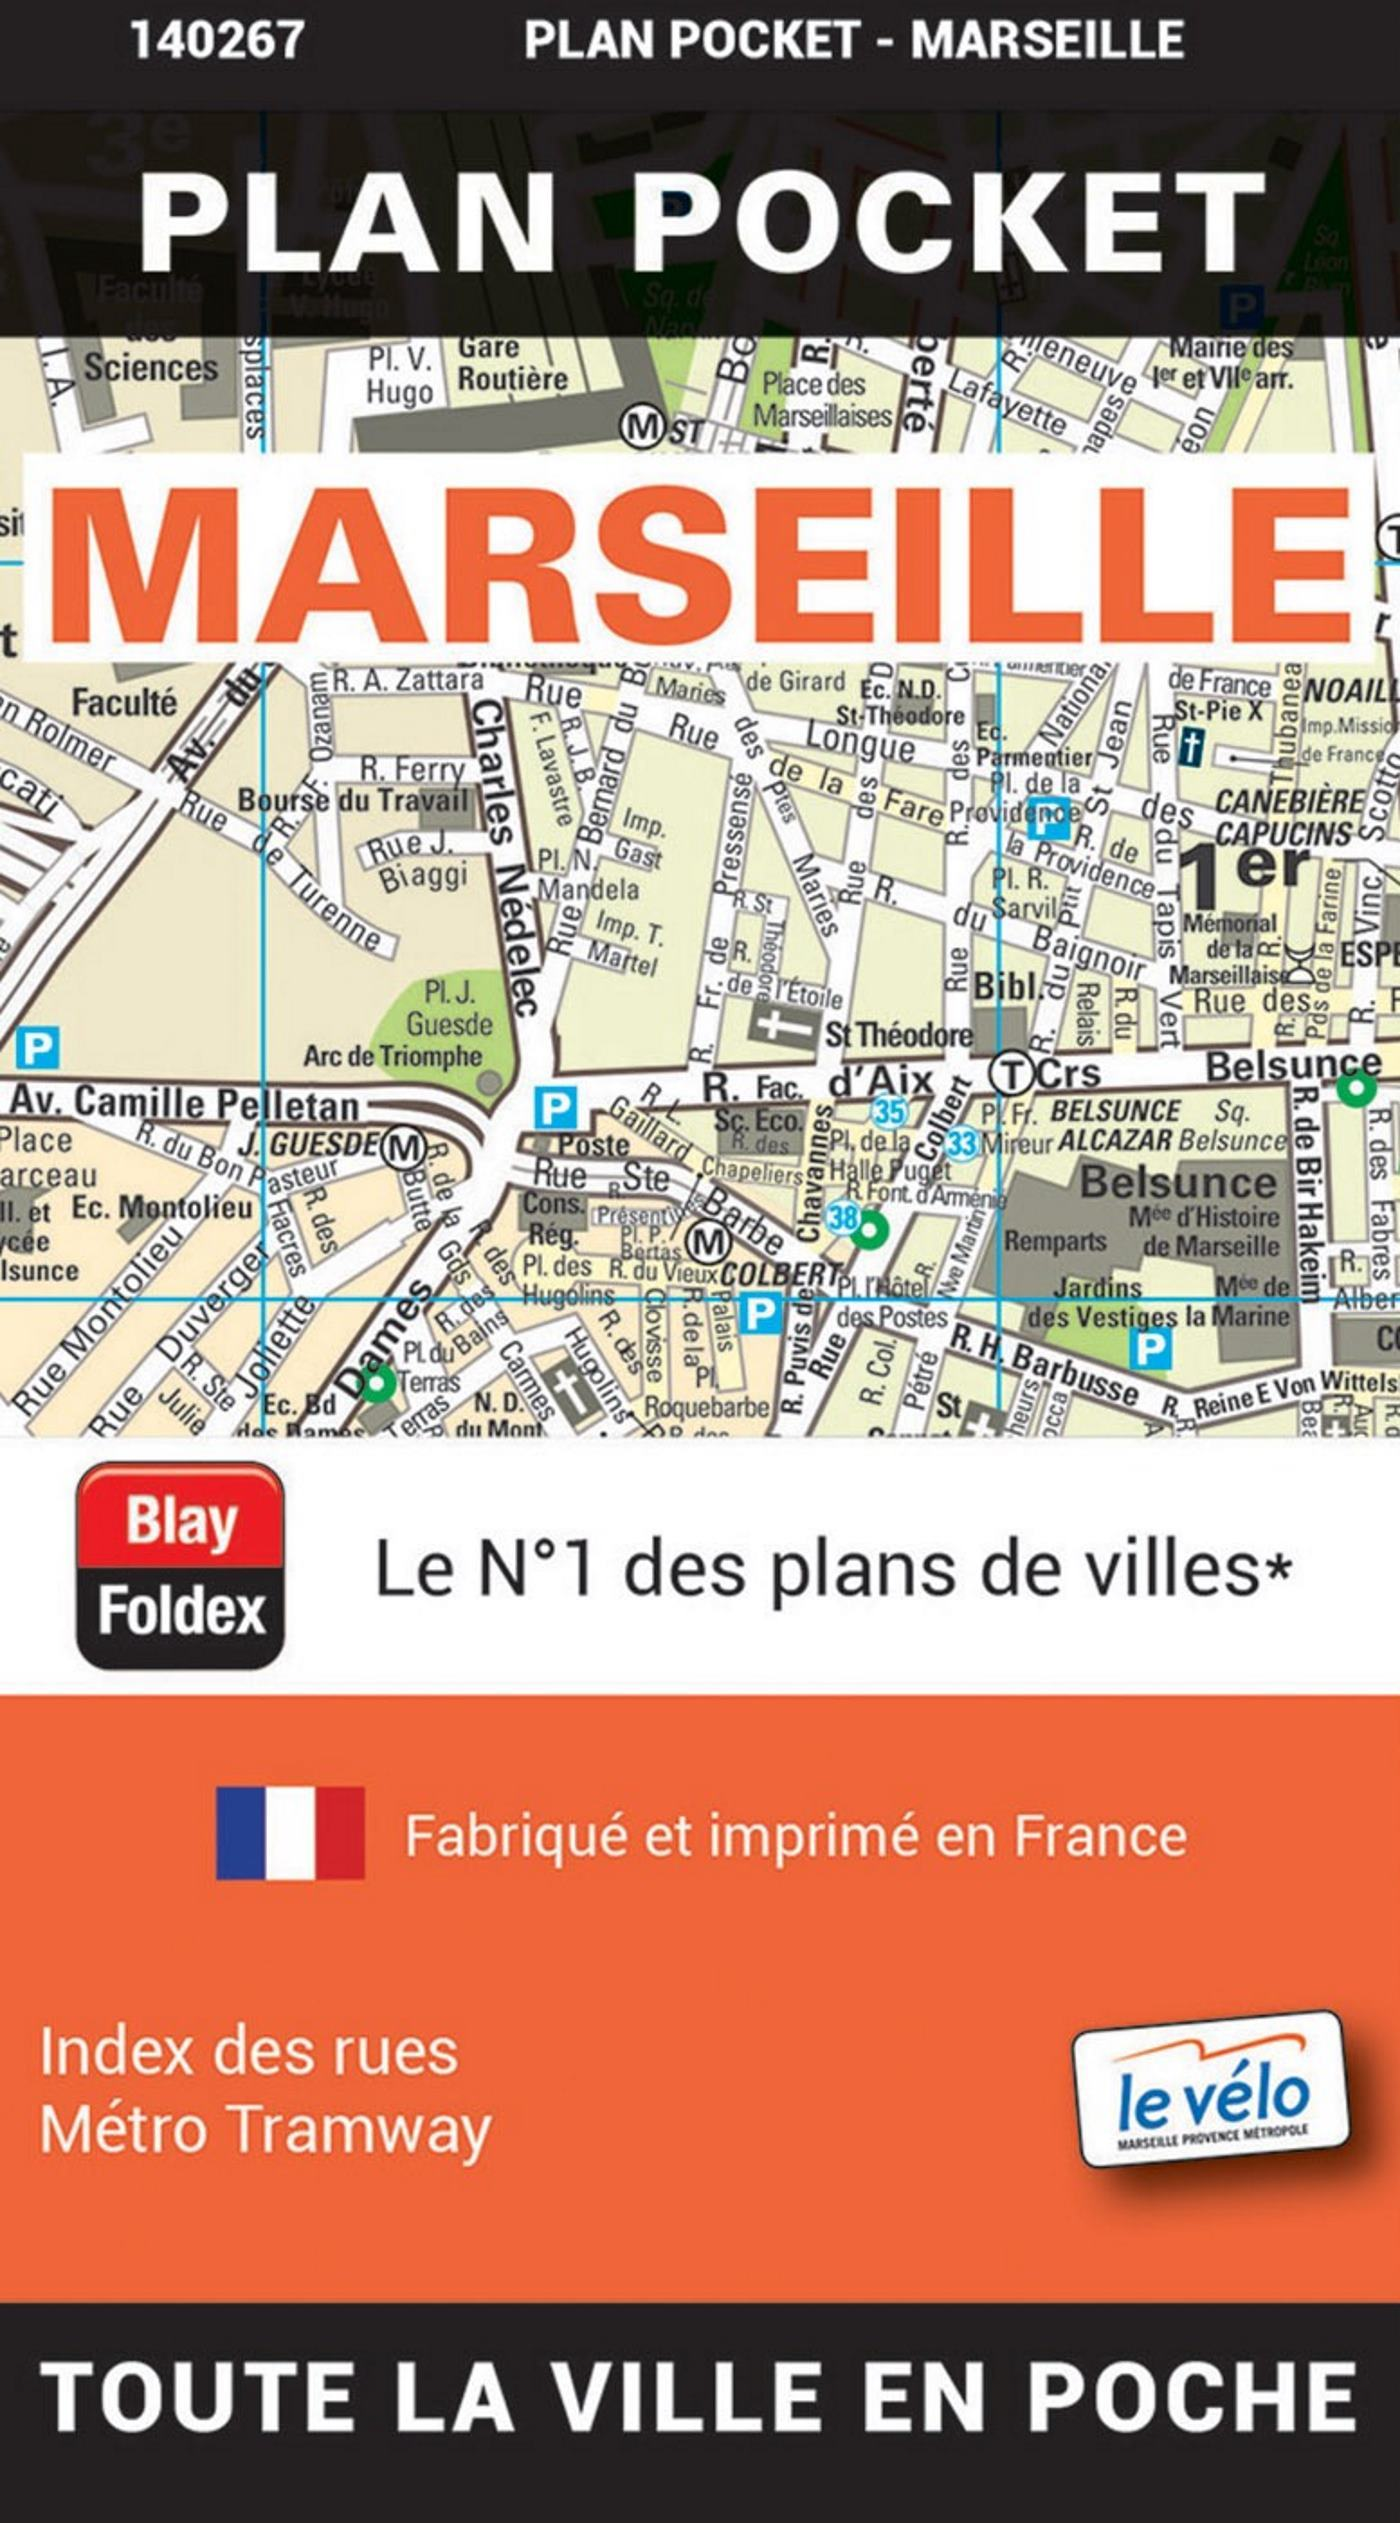 MARSEILLE PLAN POCKET